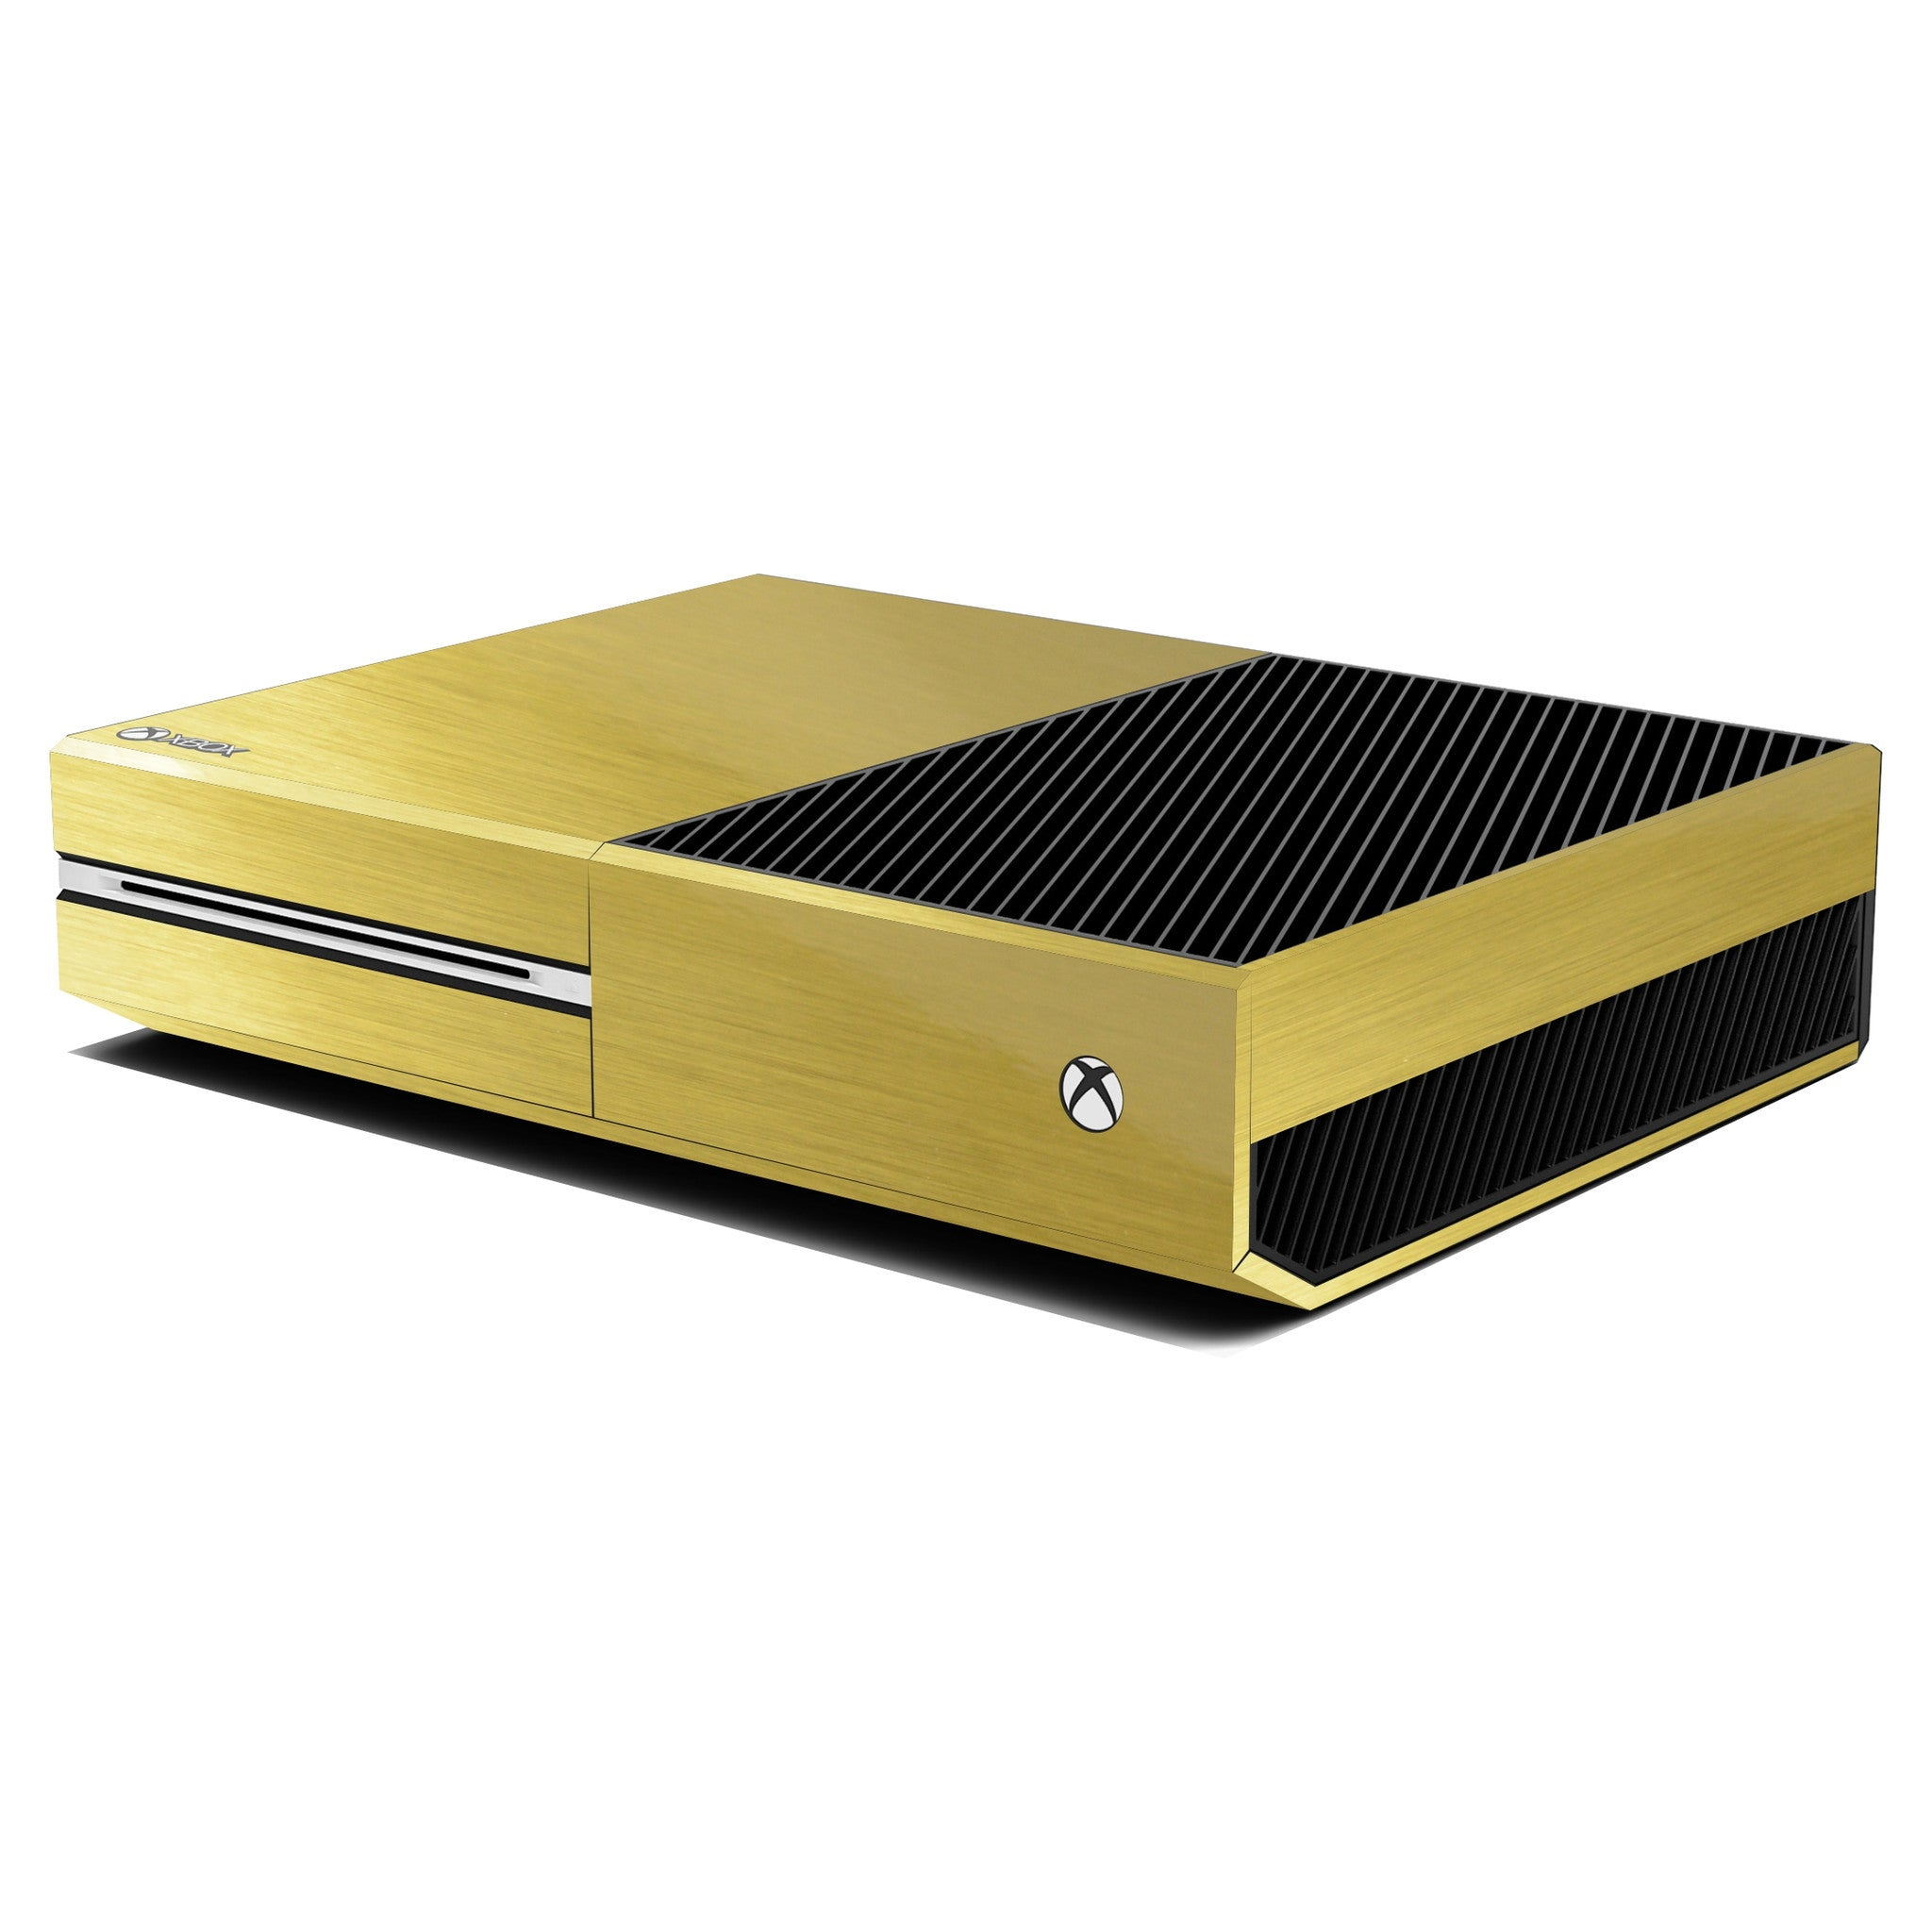 Xbox One Console Brushed metal Xbox One Skins